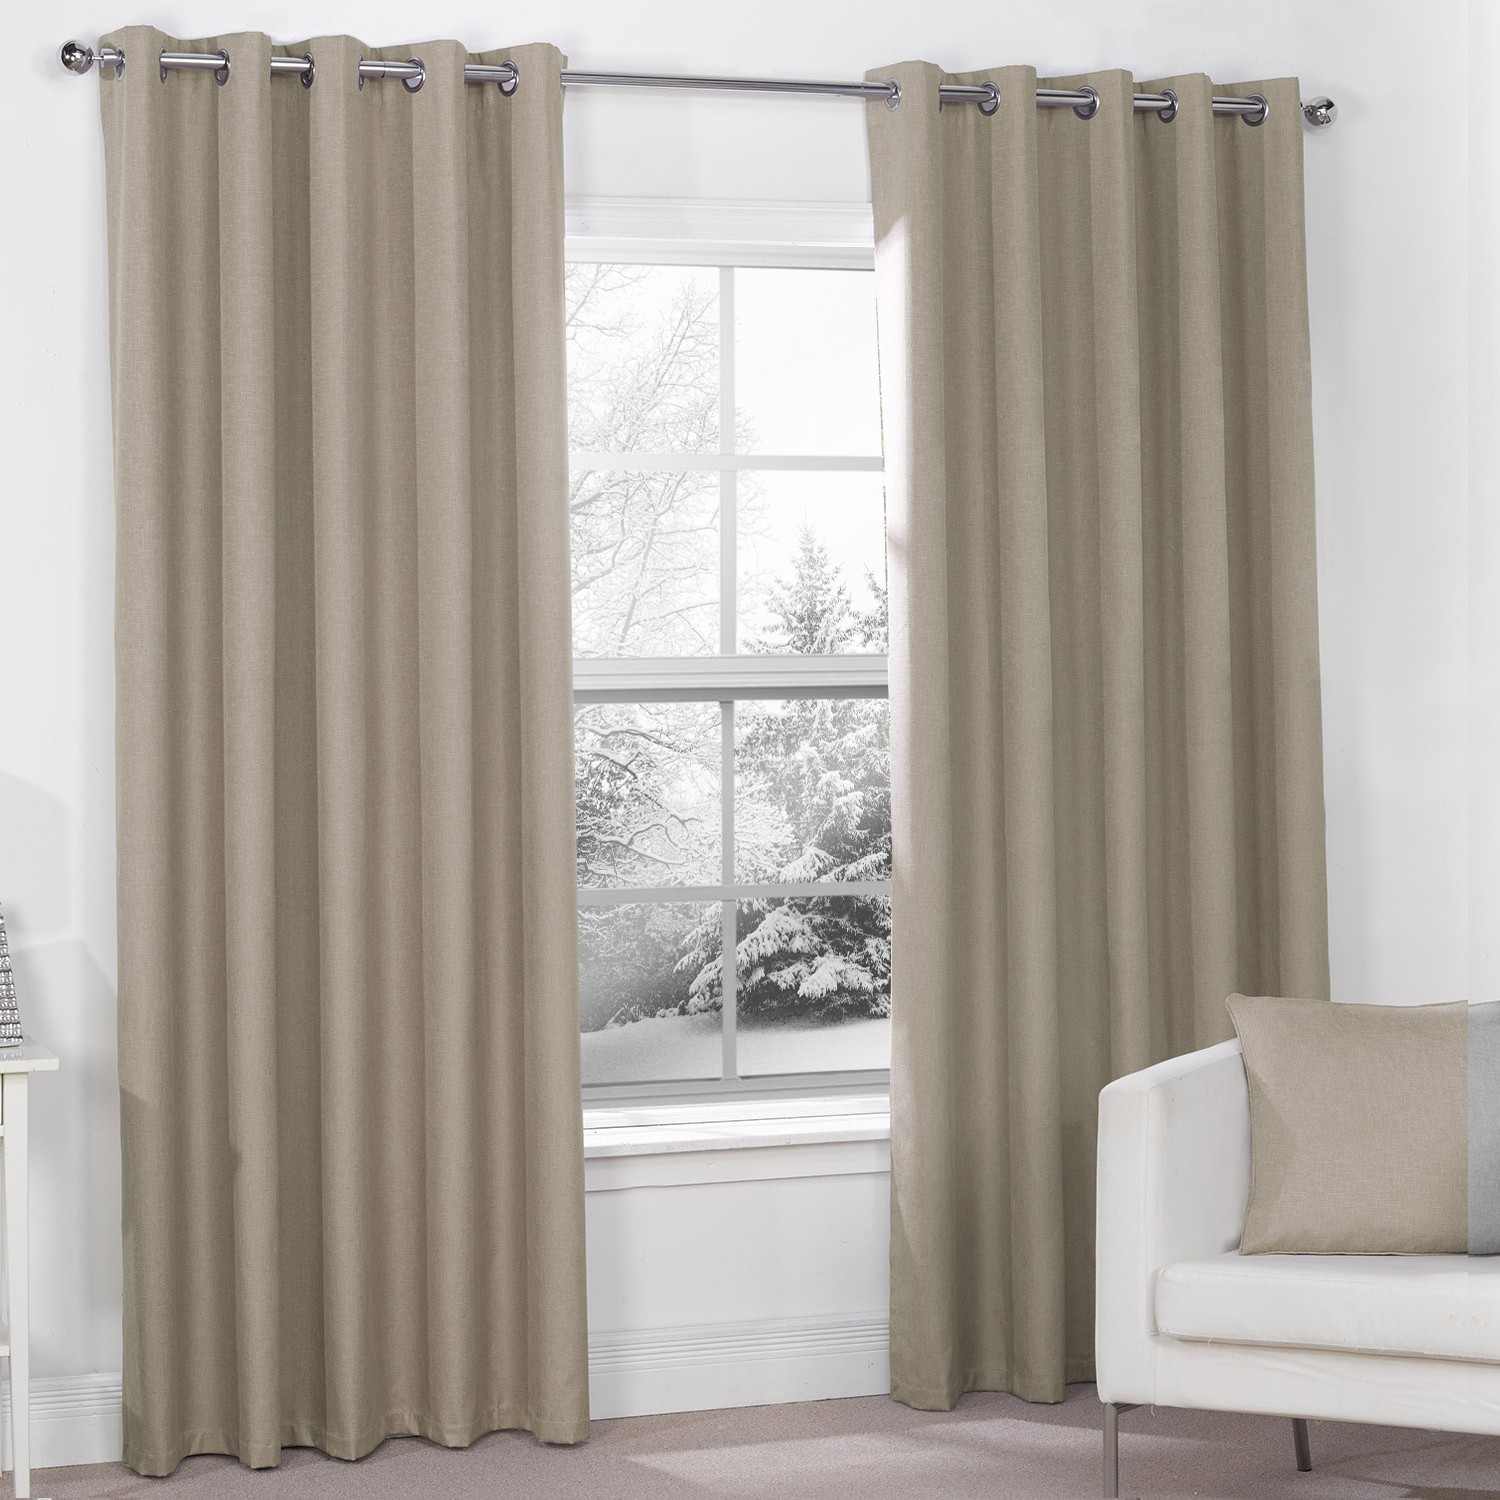 luna mocha luxury thermal blackout eyelet curtains (pair) GRFOULW